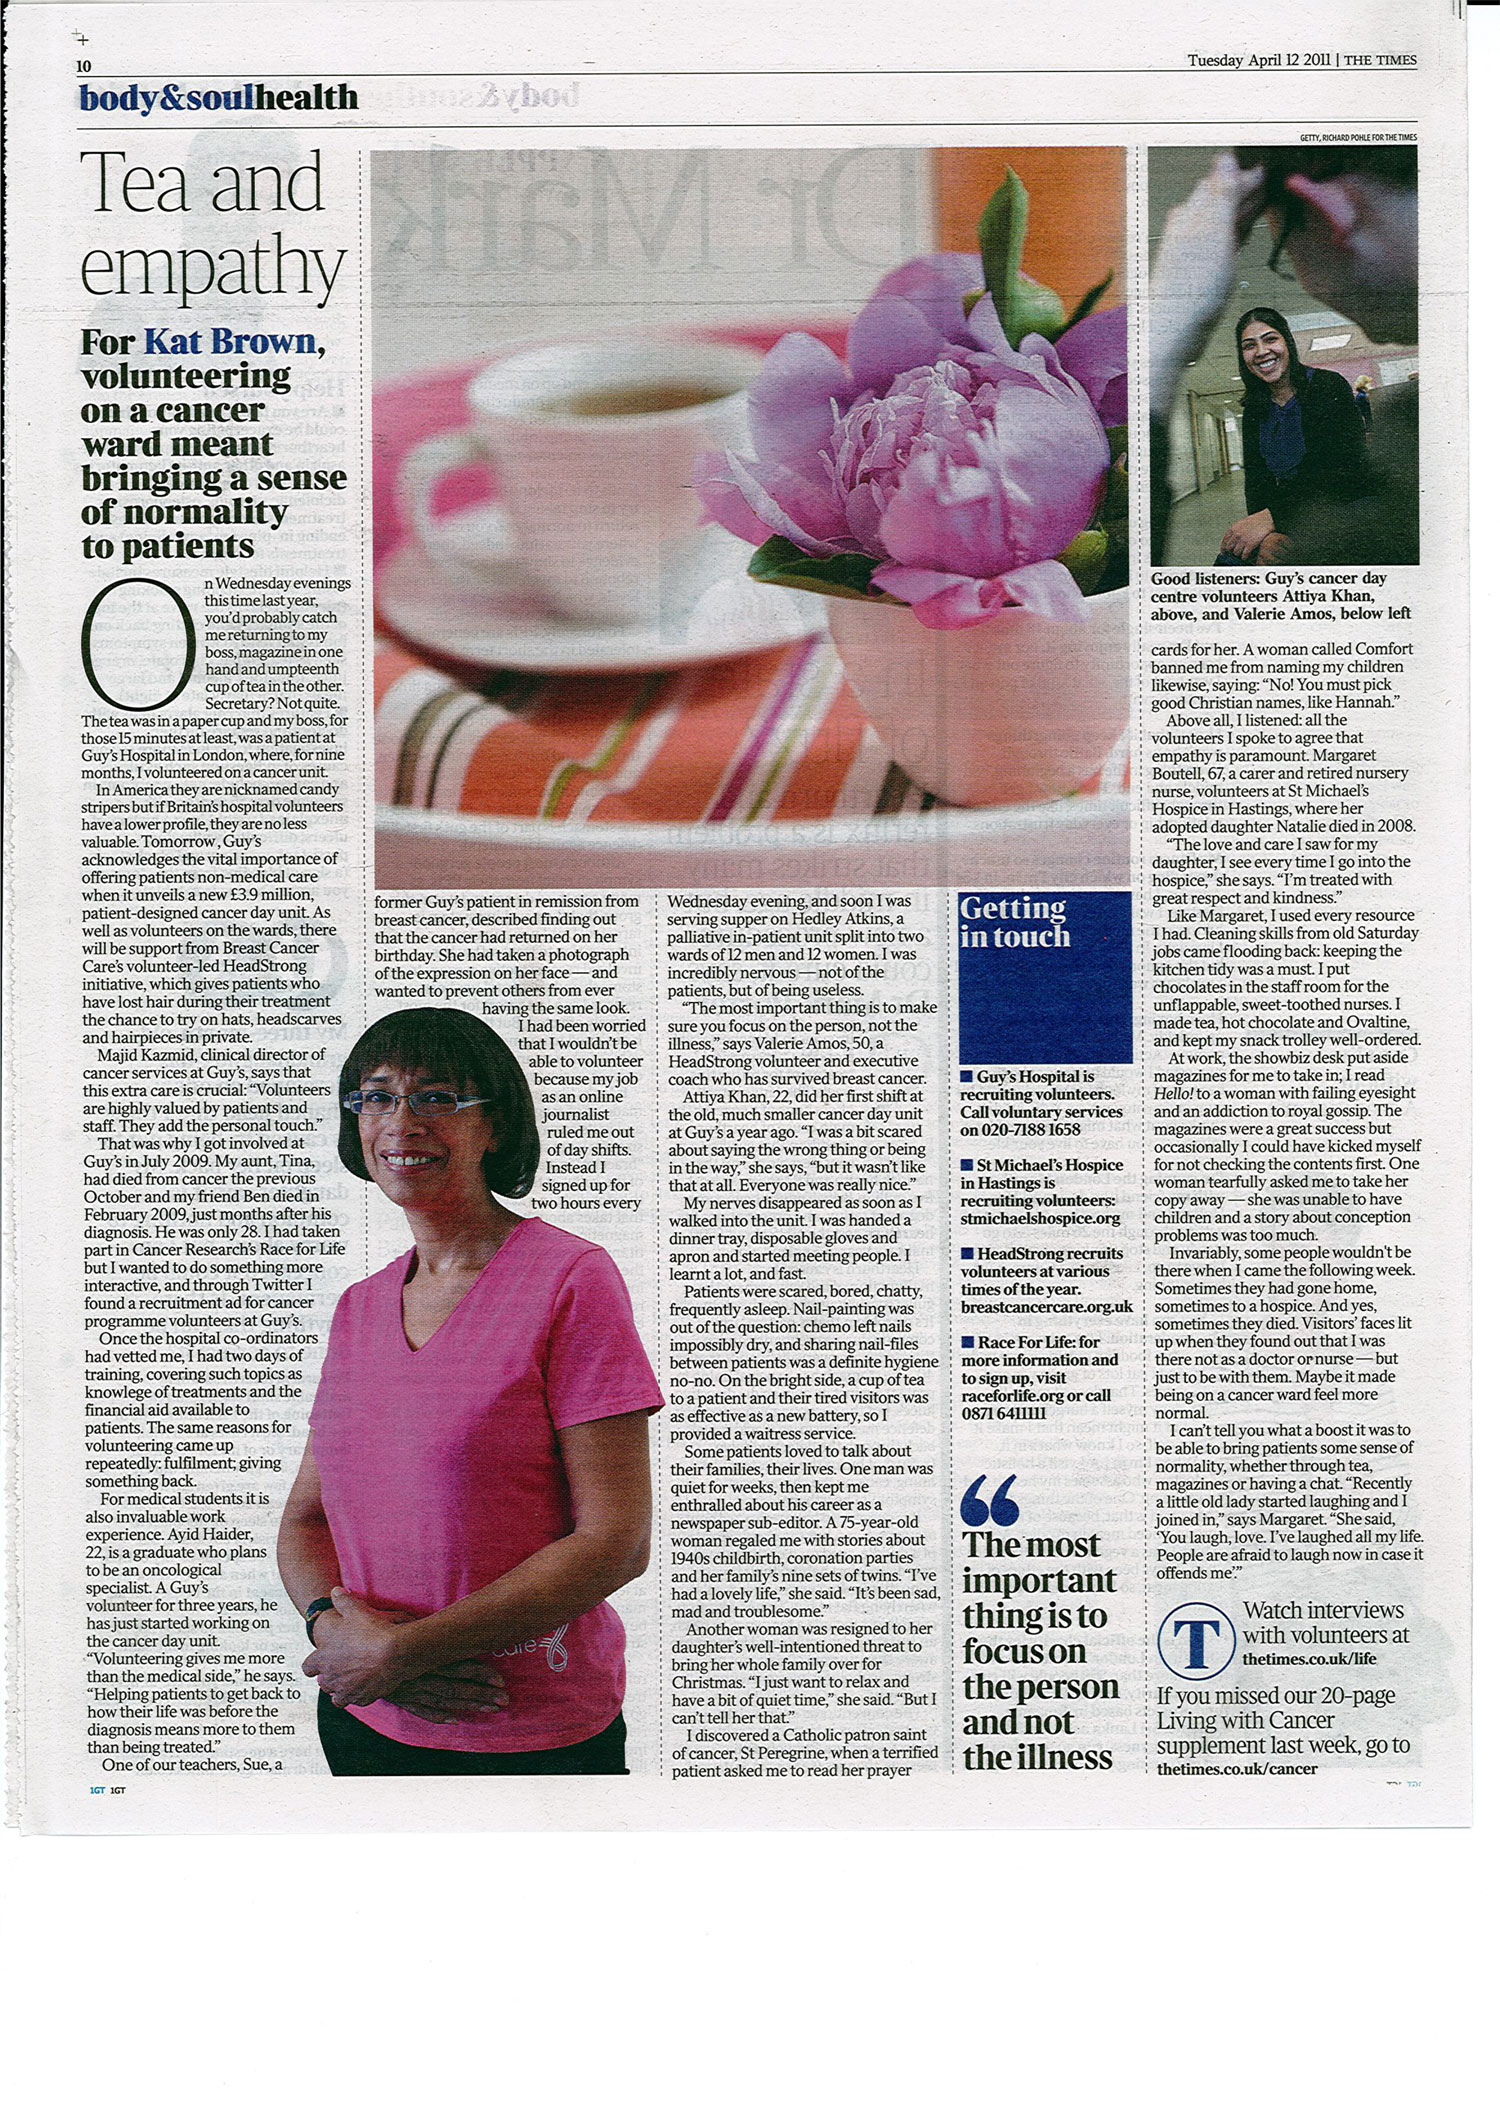 Tea and empathy on the cancer ward - The Times